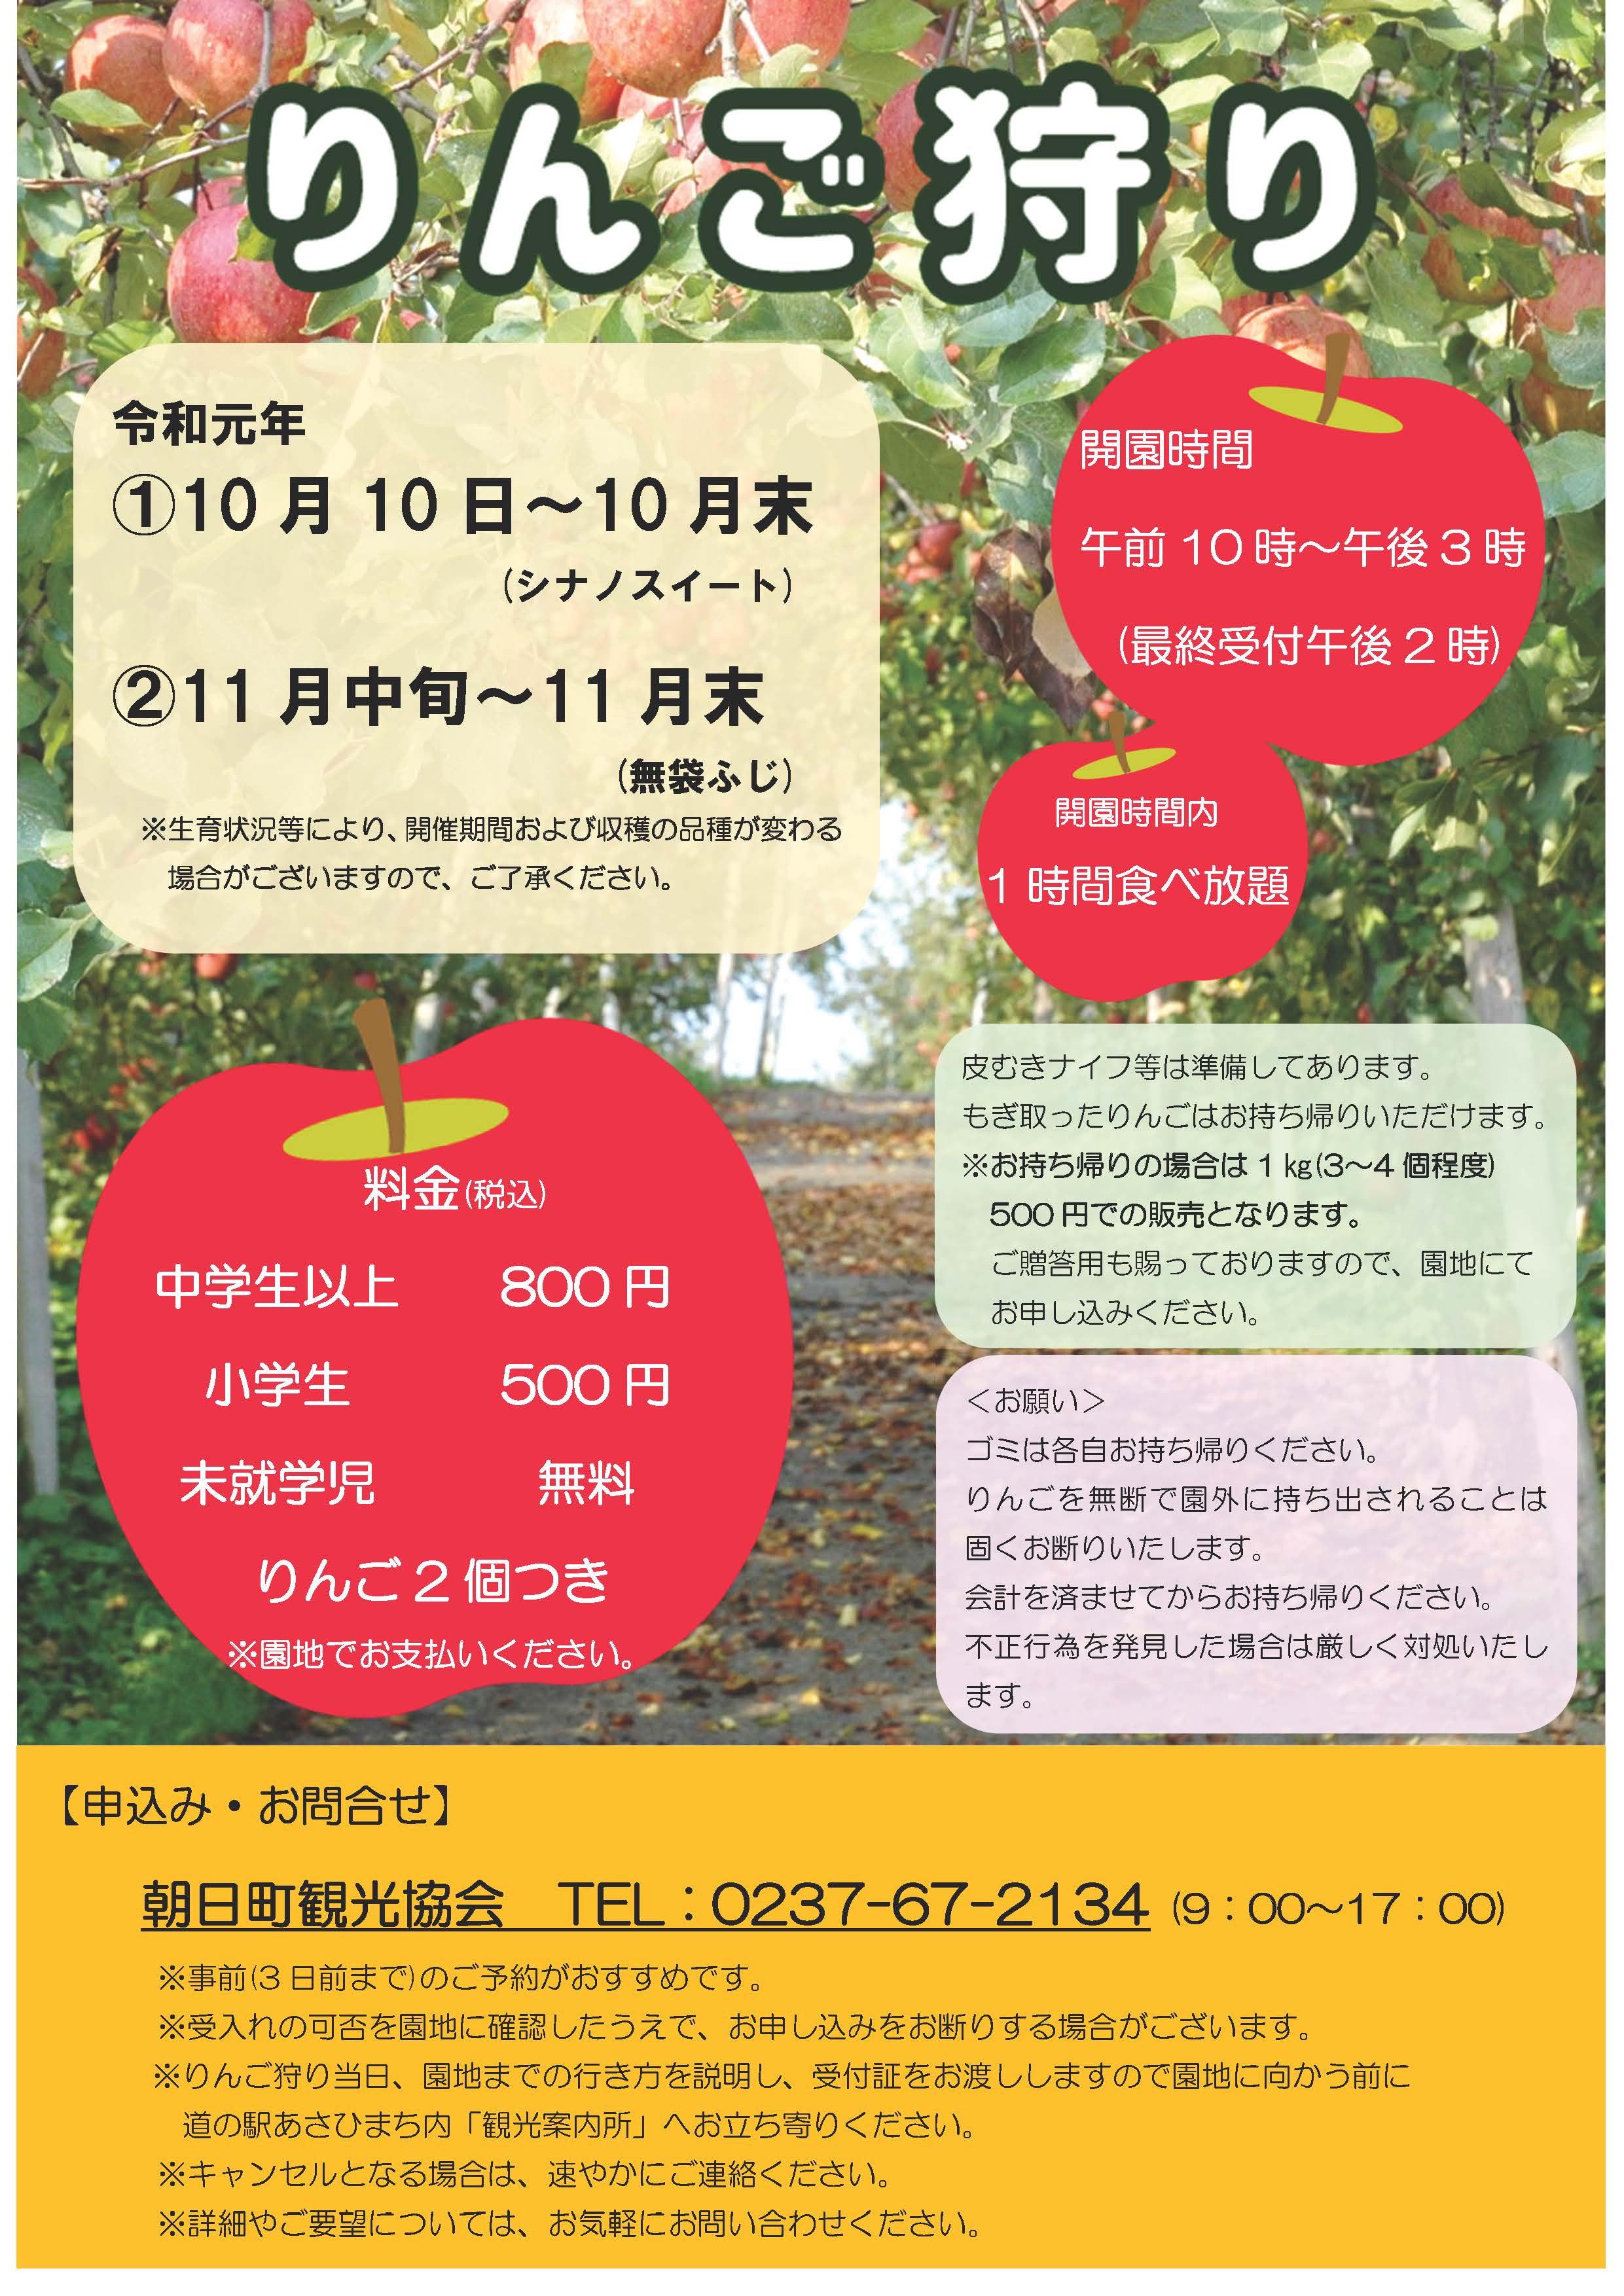 [Asahi-machi] Guidance of 2019 apple hunting ※It was finished ※: Image